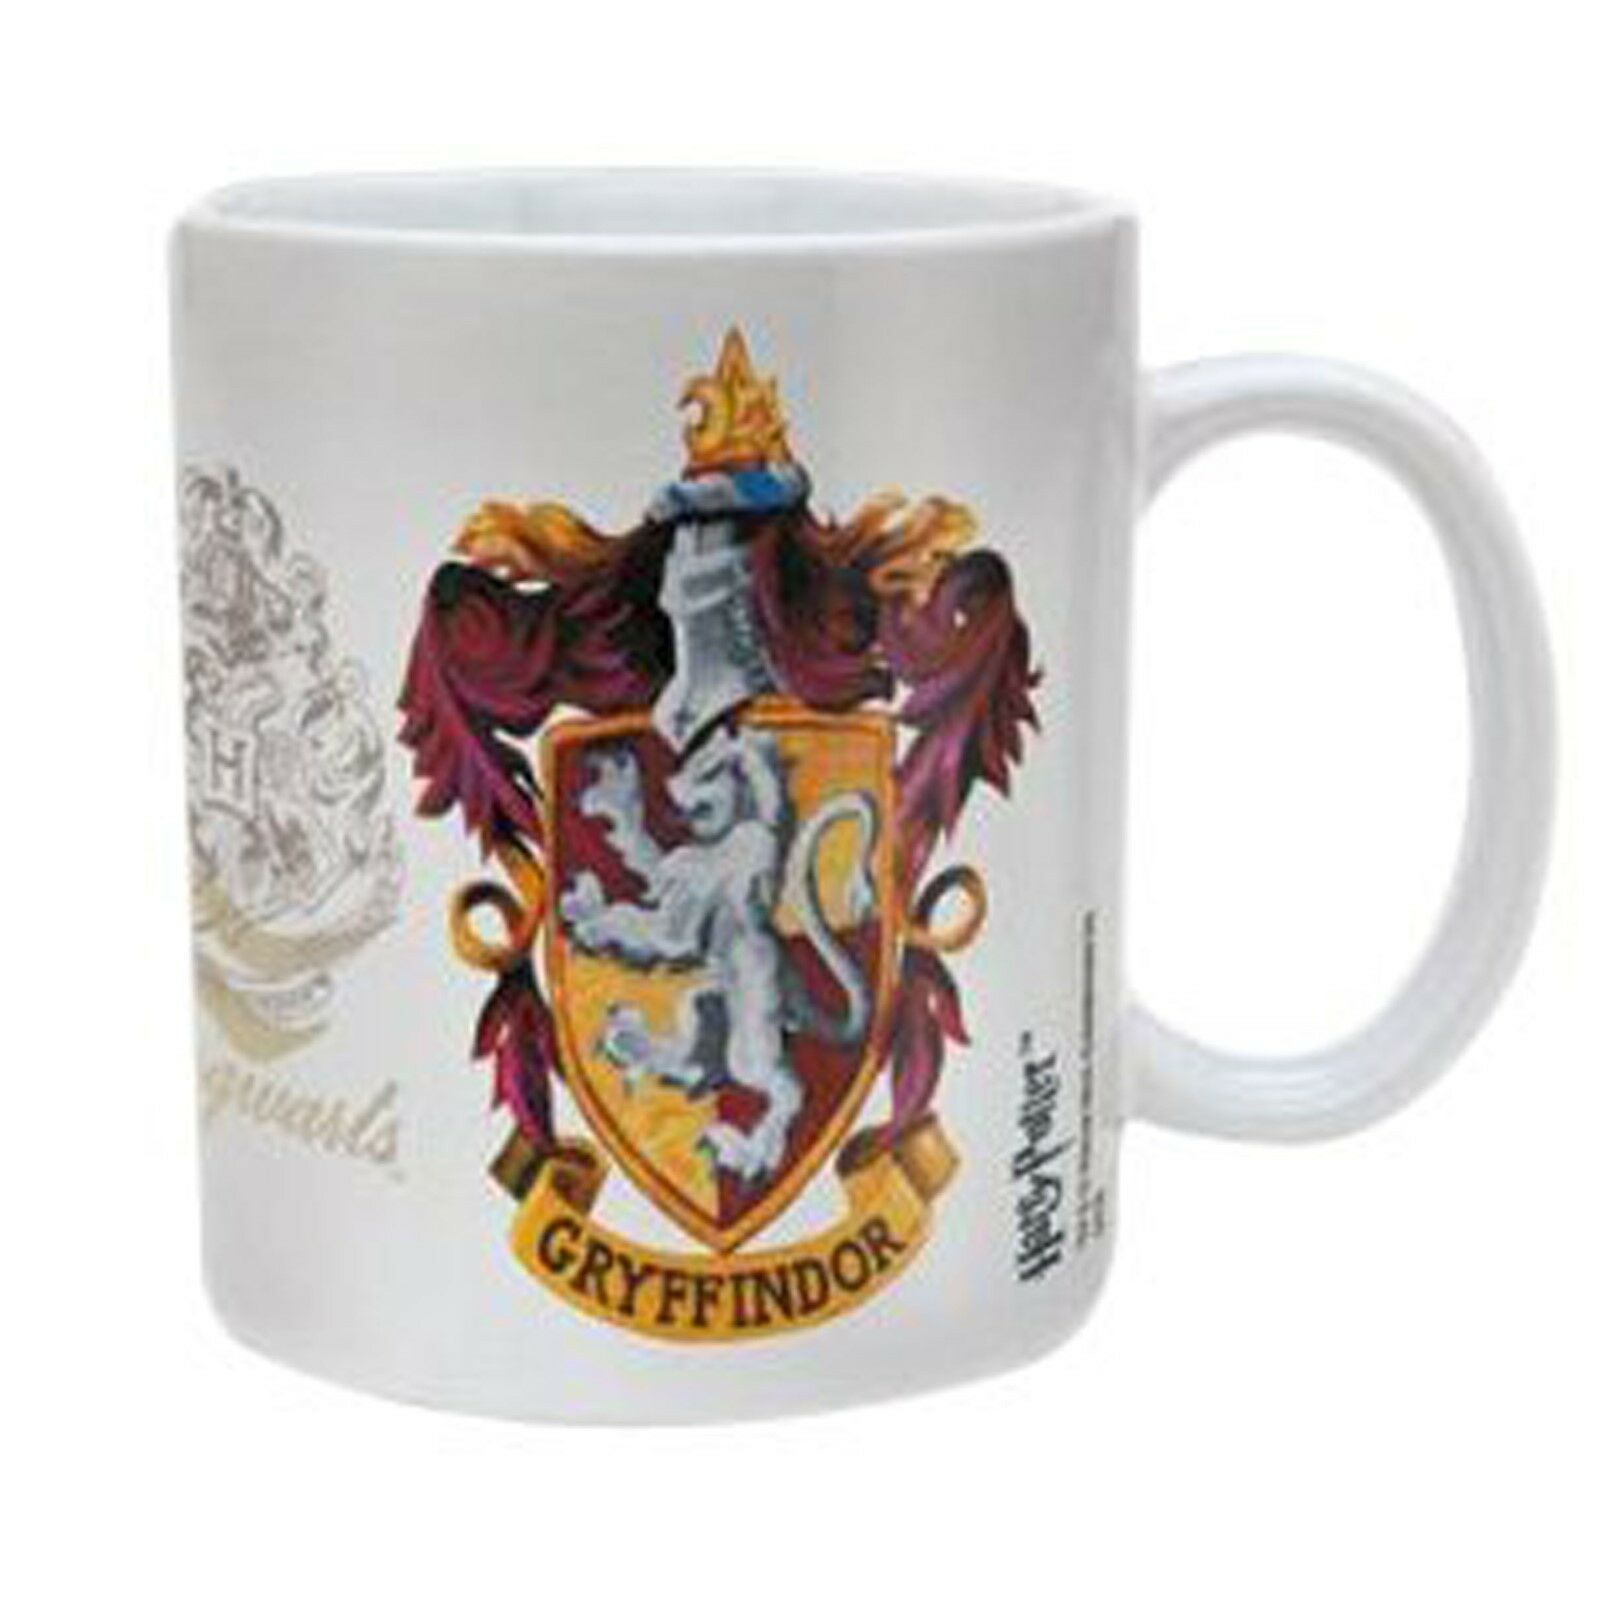 tazza HARRY POTTER 8 x 11.5 x 9.5 cm GRYFFINDOR CREST